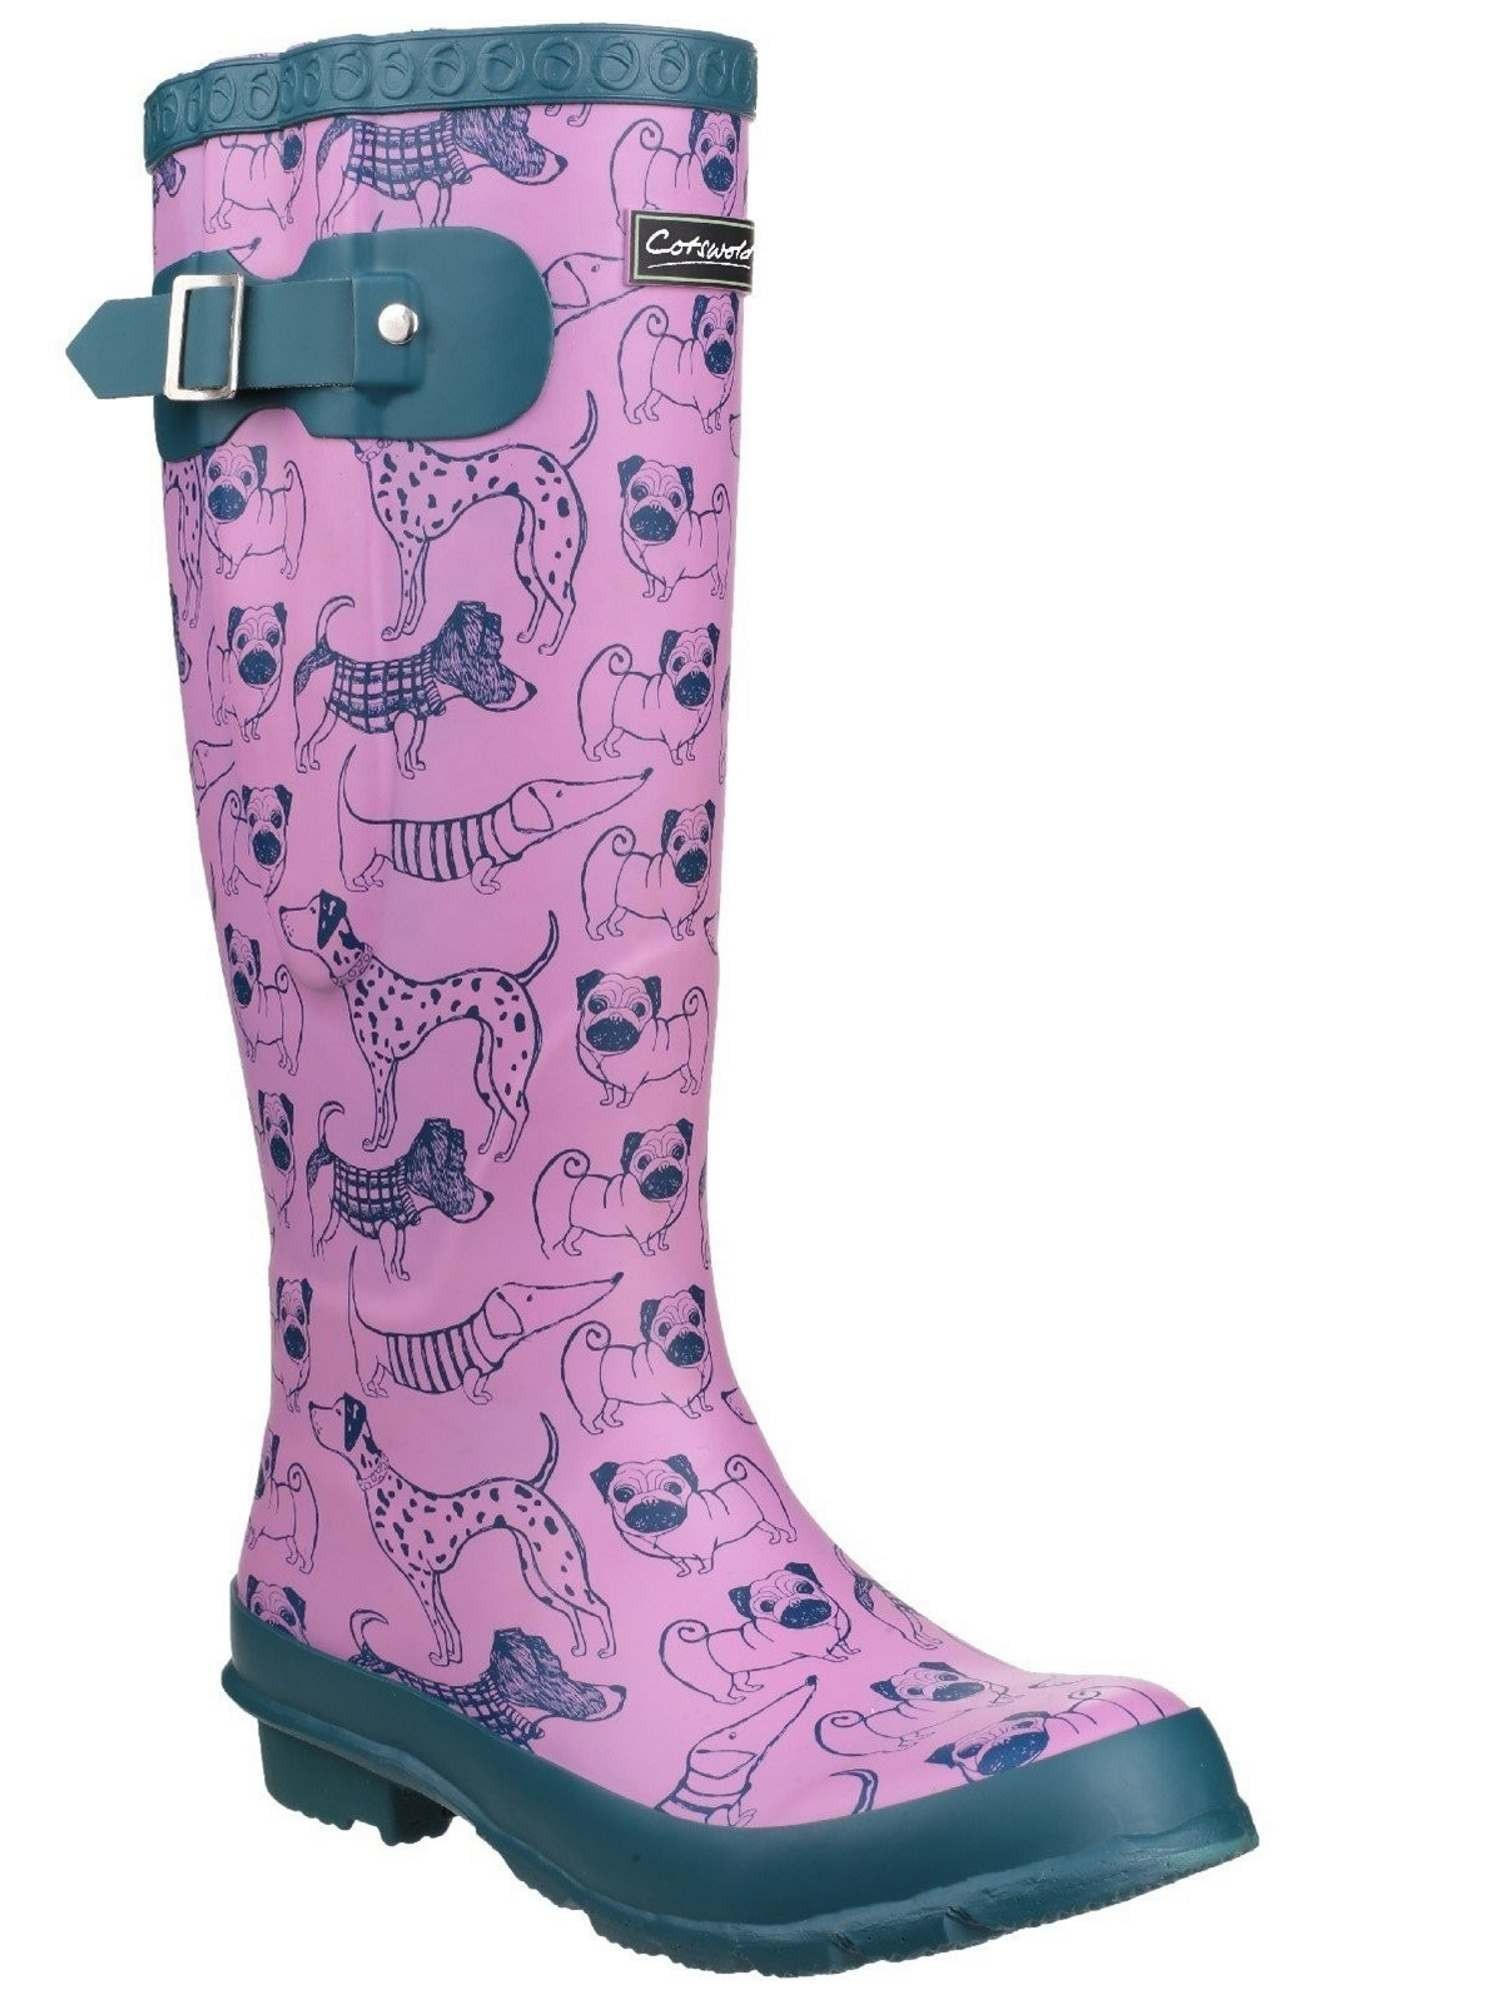 Cotswold Windsor Dog Print Printed Wellies Women